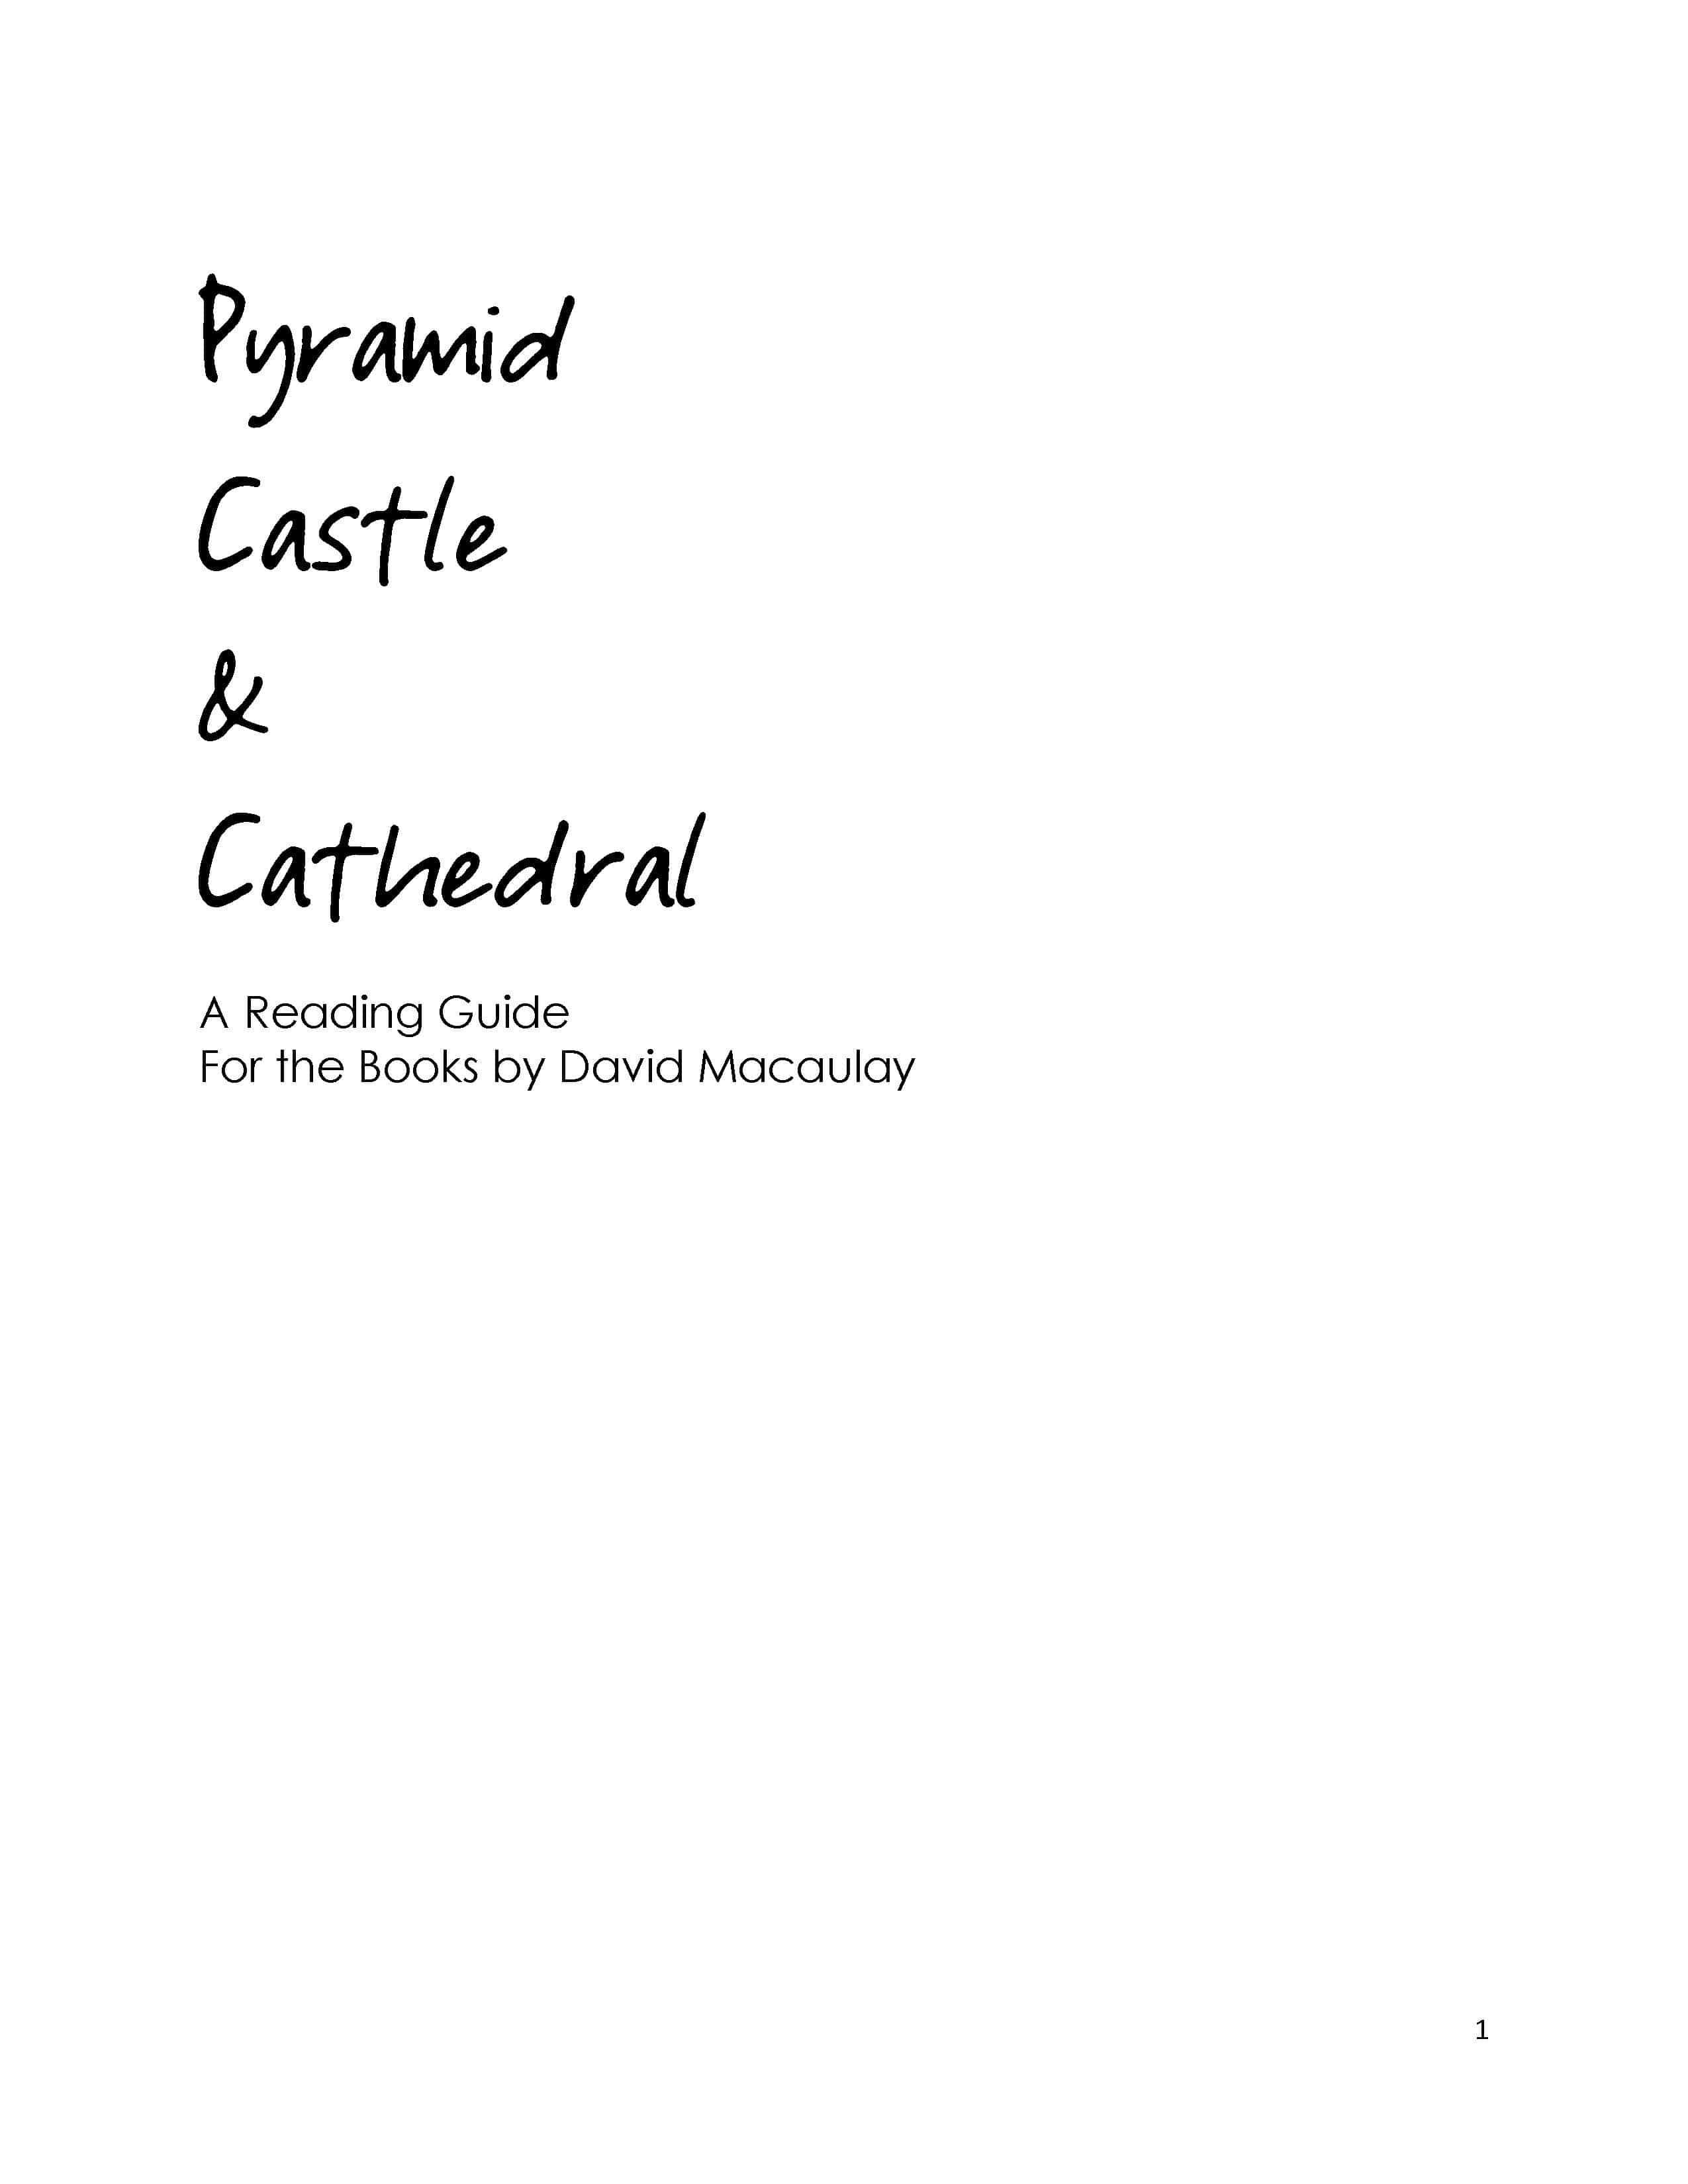 Pyramid, Castle & Cathedral (Three Books by David Macaulay) – Reading Guide (Download)